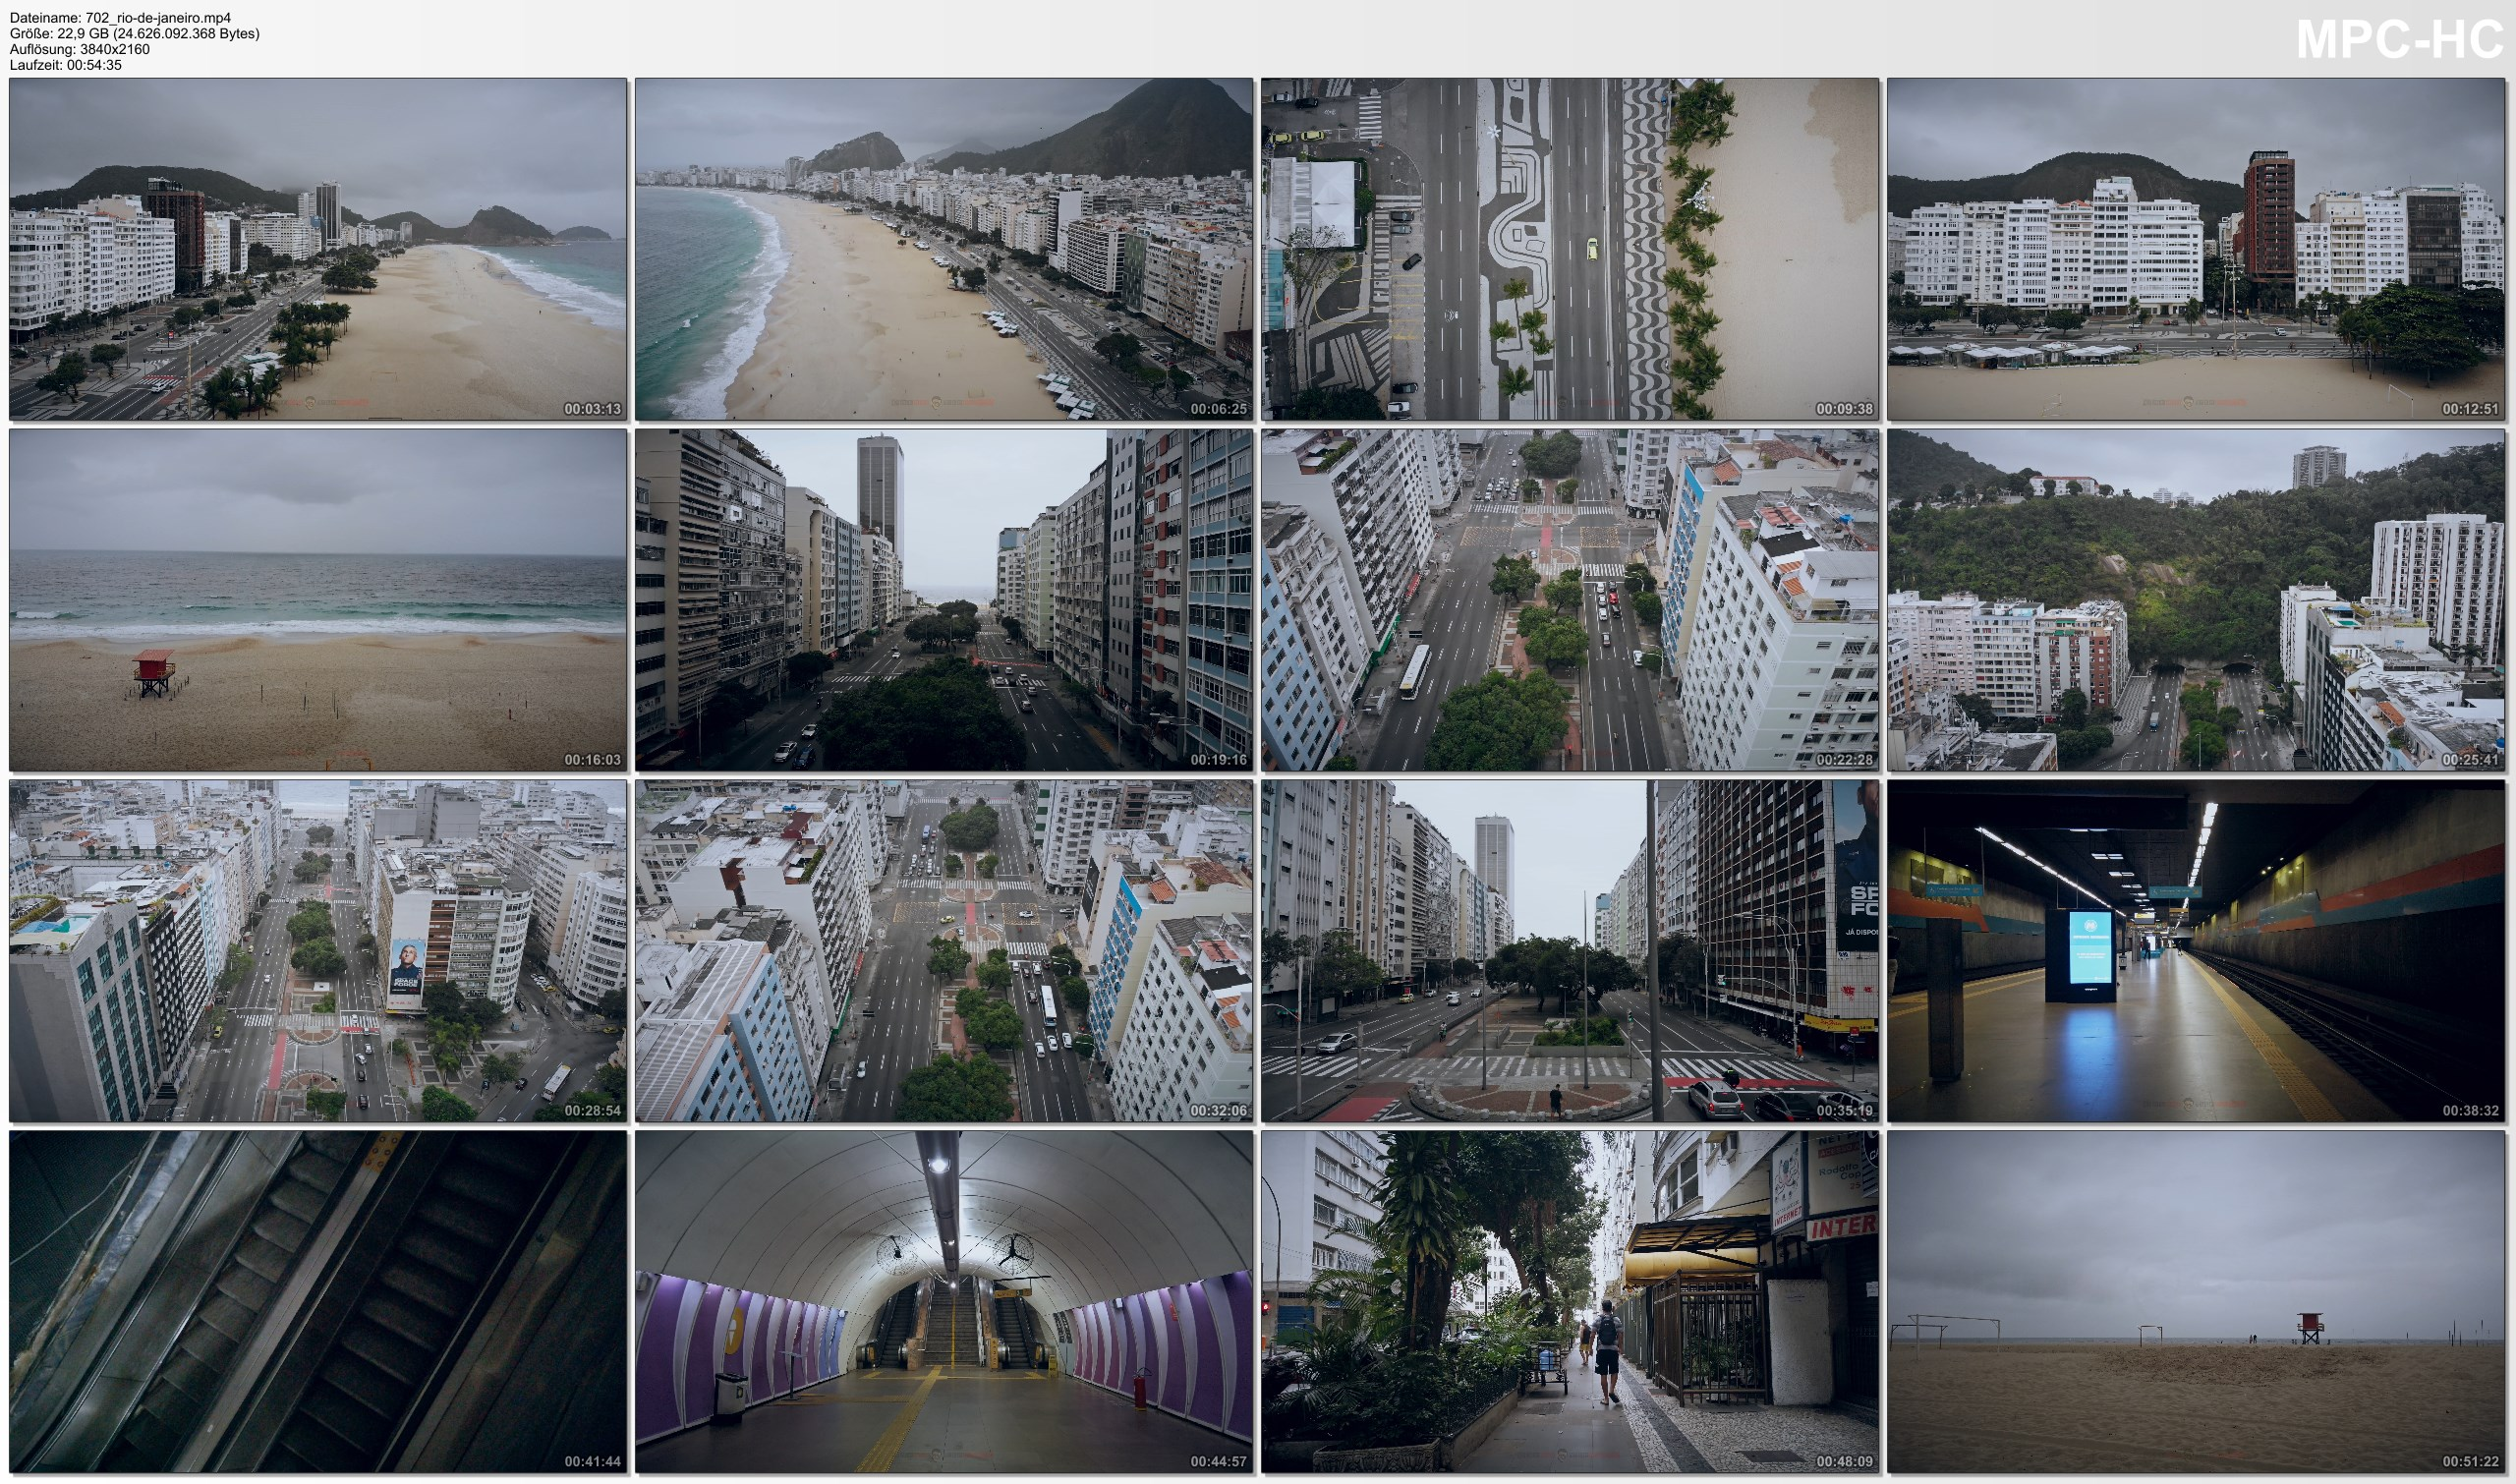 Drone Pictures from Video 【4K】Lockdown of Rio de Janeiro »1 Hour | BRAZIL | June 14, 2020 | Cinematic Wolf Aerial™ Drone Film